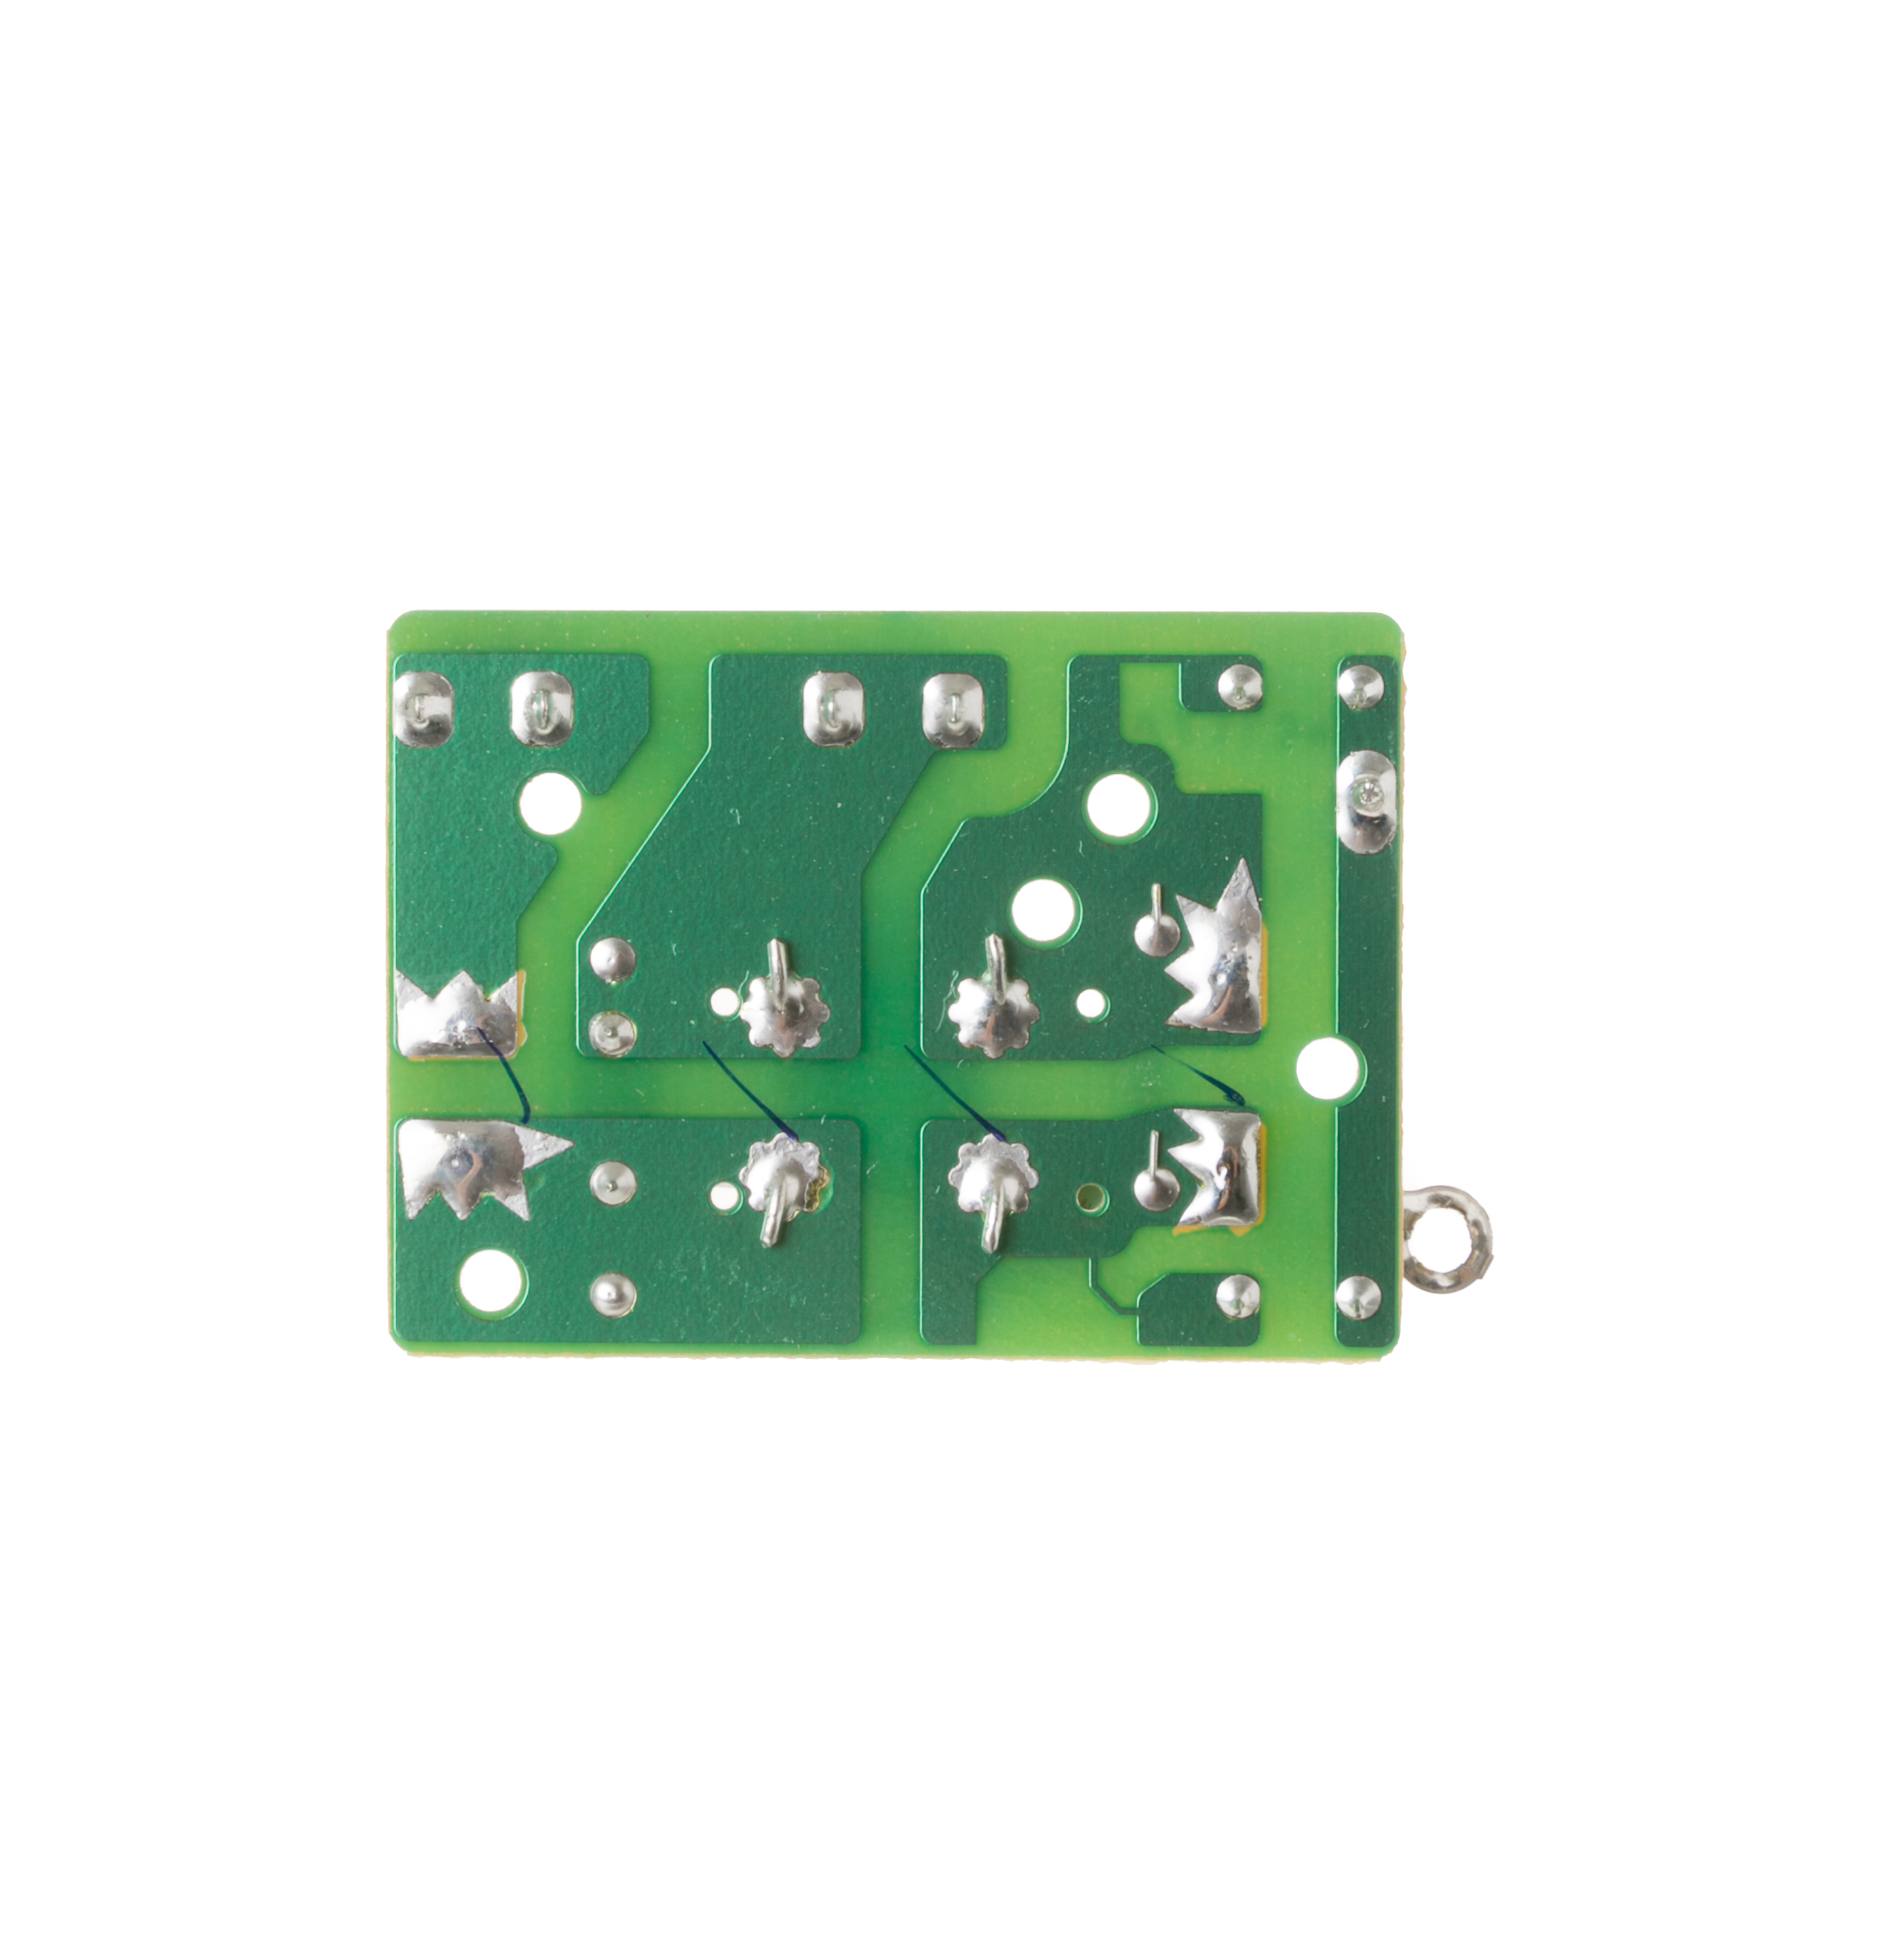 Wb02x11245 Microwave Noise Filter Ge Appliances Parts Circuit Product Image